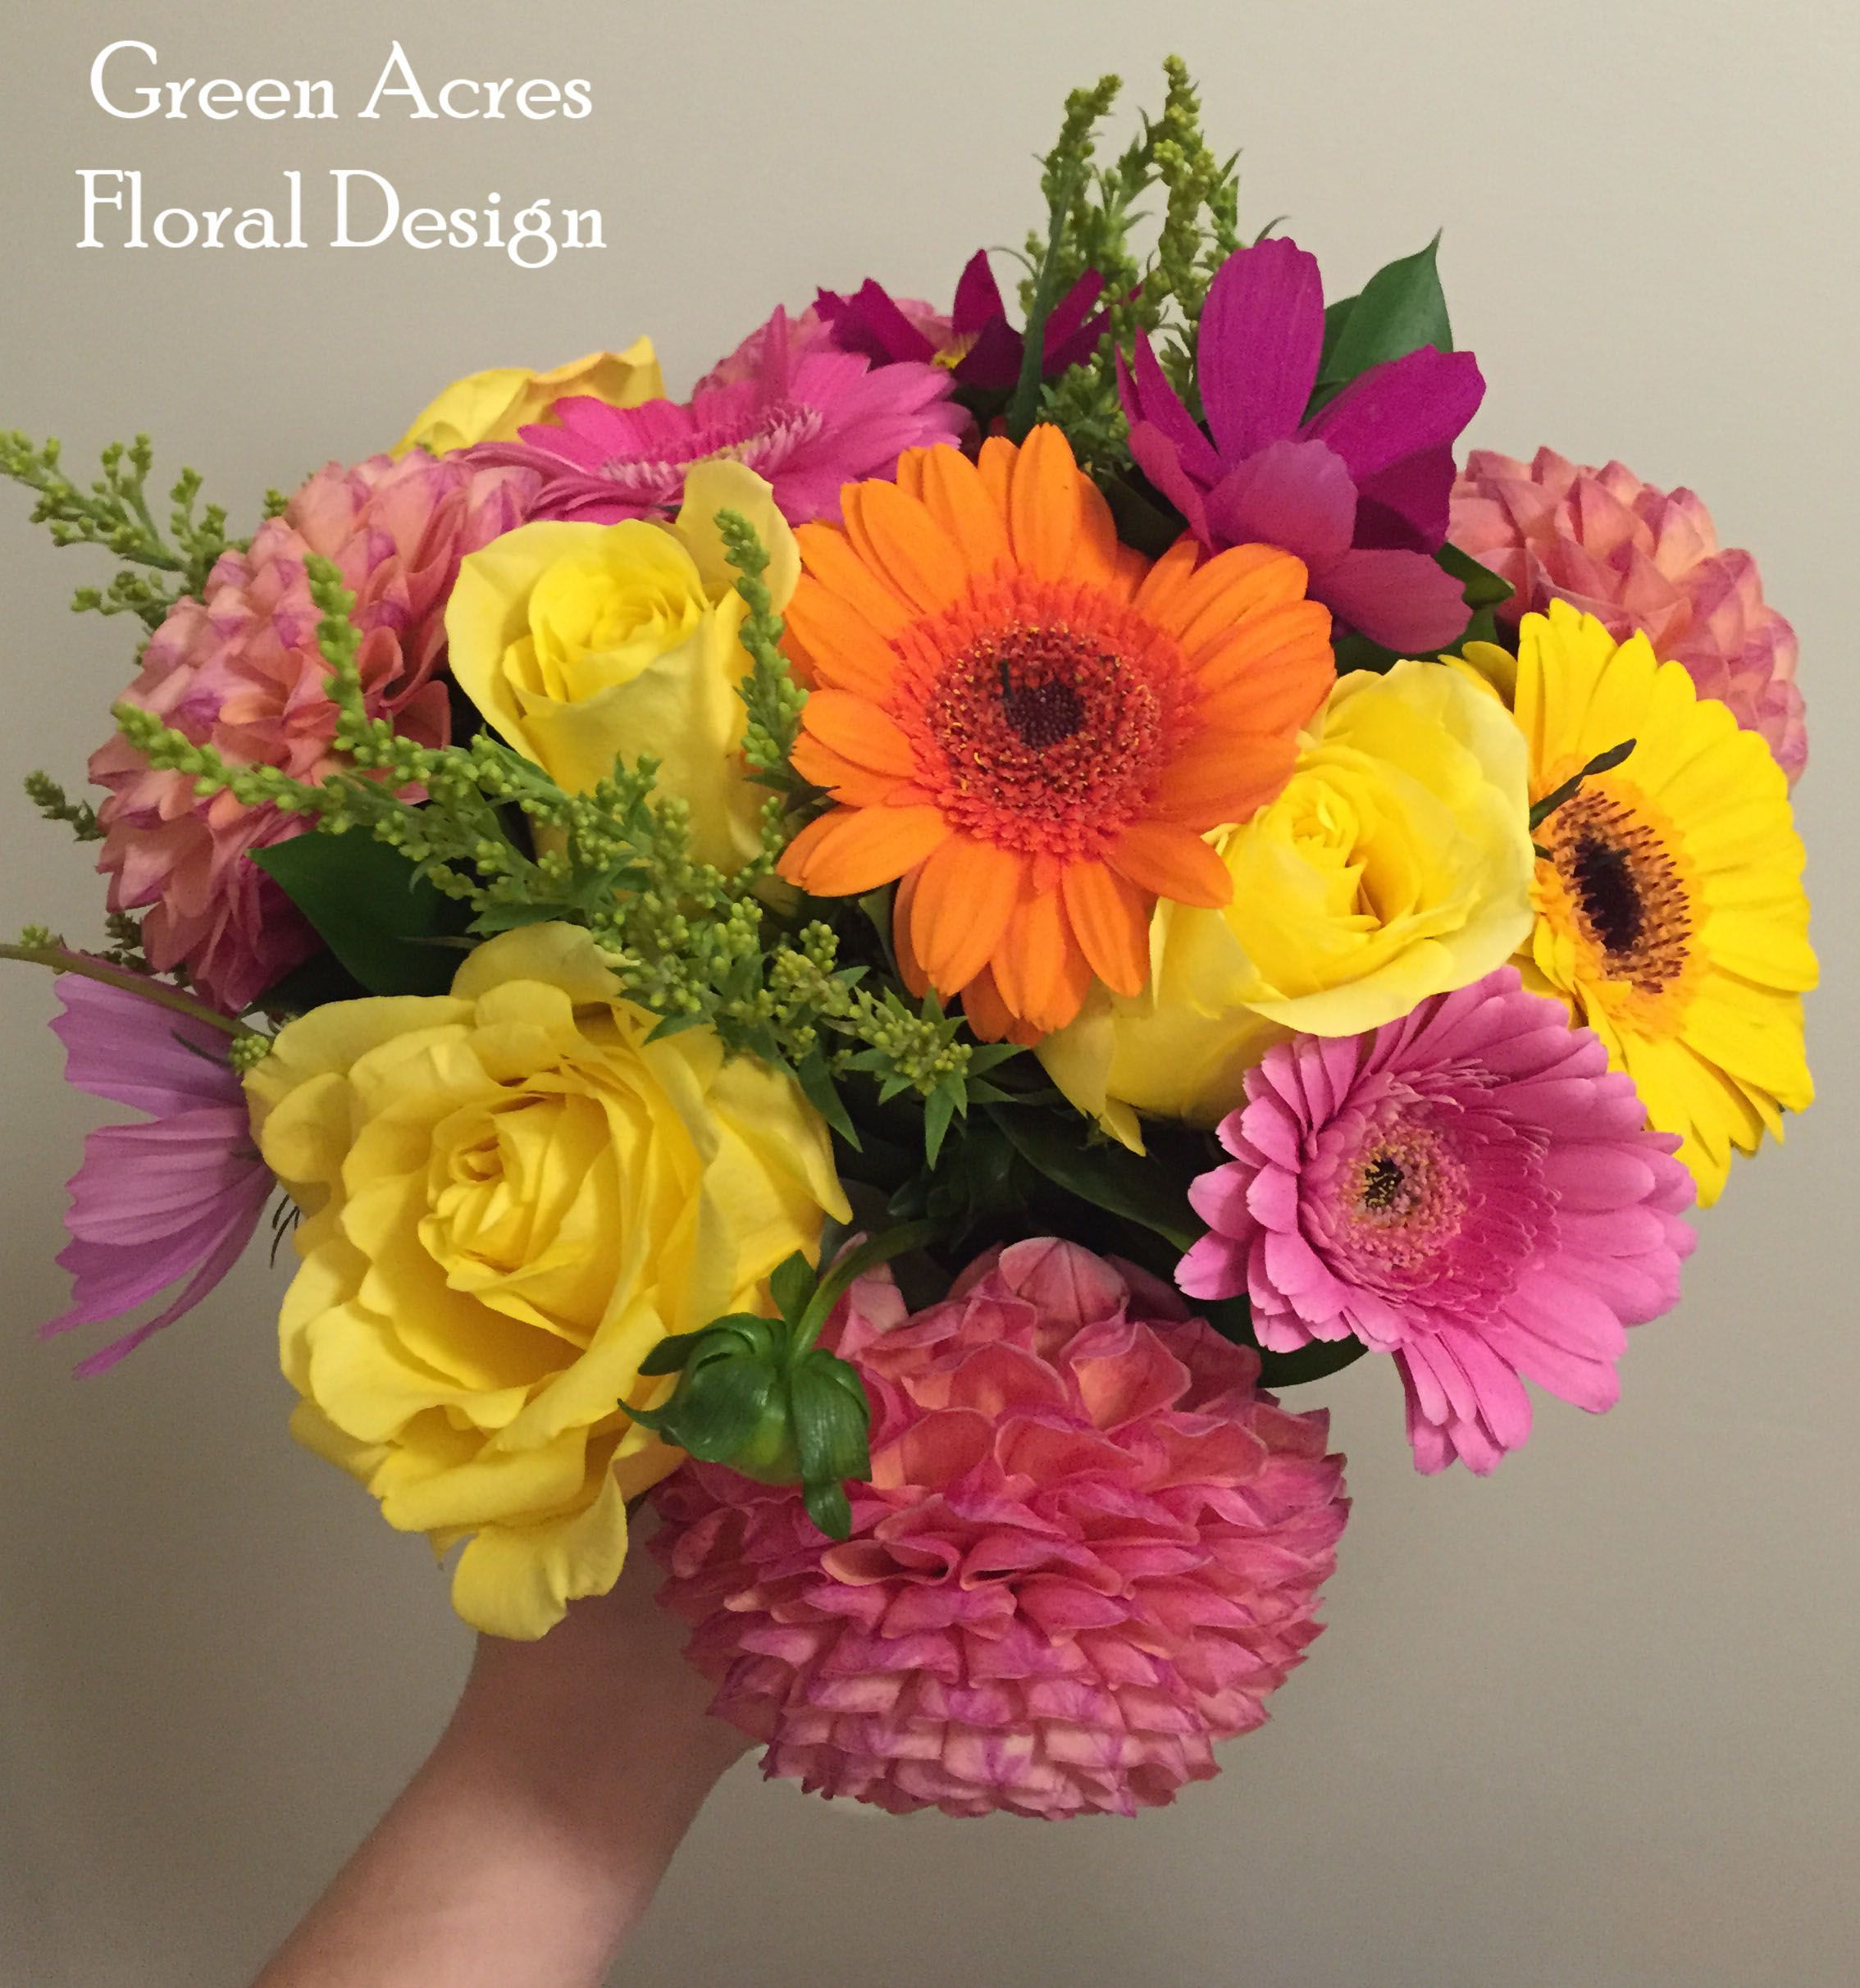 A bright and summery floral arrangement of dahlias roses cosmos a bright and summery floral arrangement of dahlias roses cosmos and gerbera daisies reviewsmspy